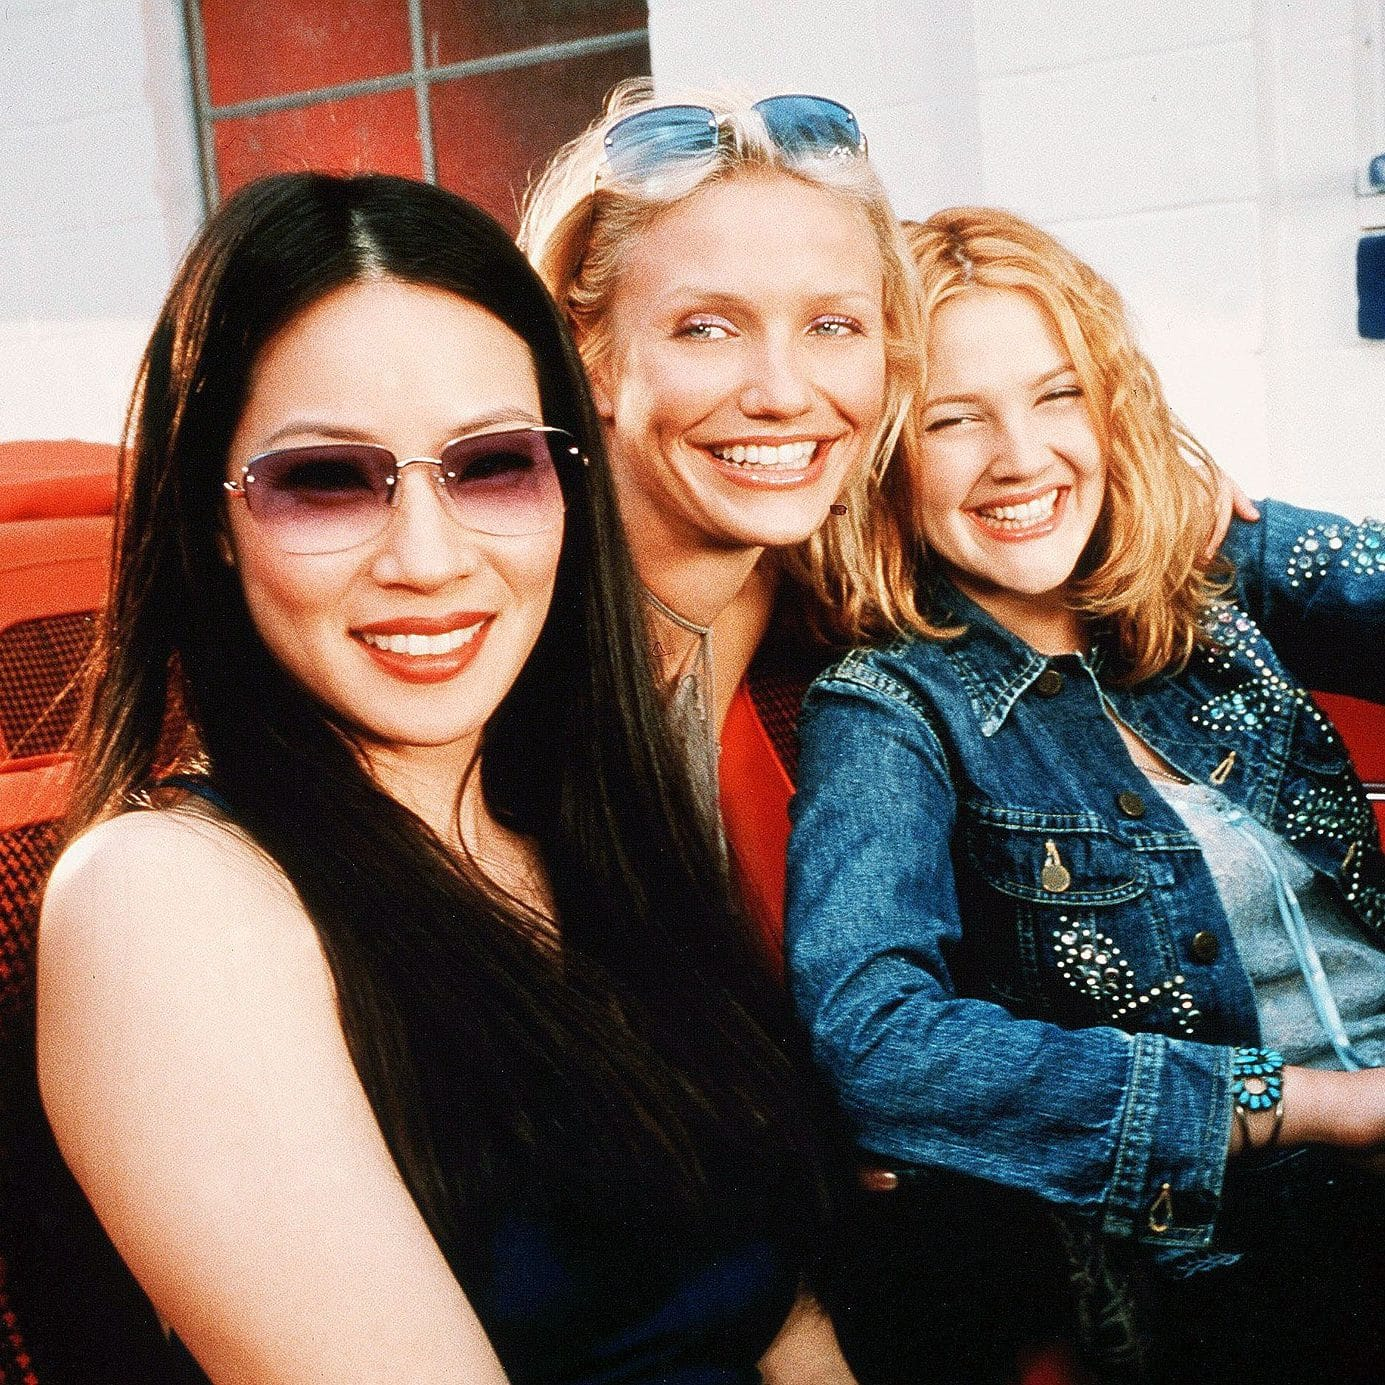 barrymore diaz charlies angels e1571826594875 20 Kick-Ass Facts About Charlie's Angels (2000)